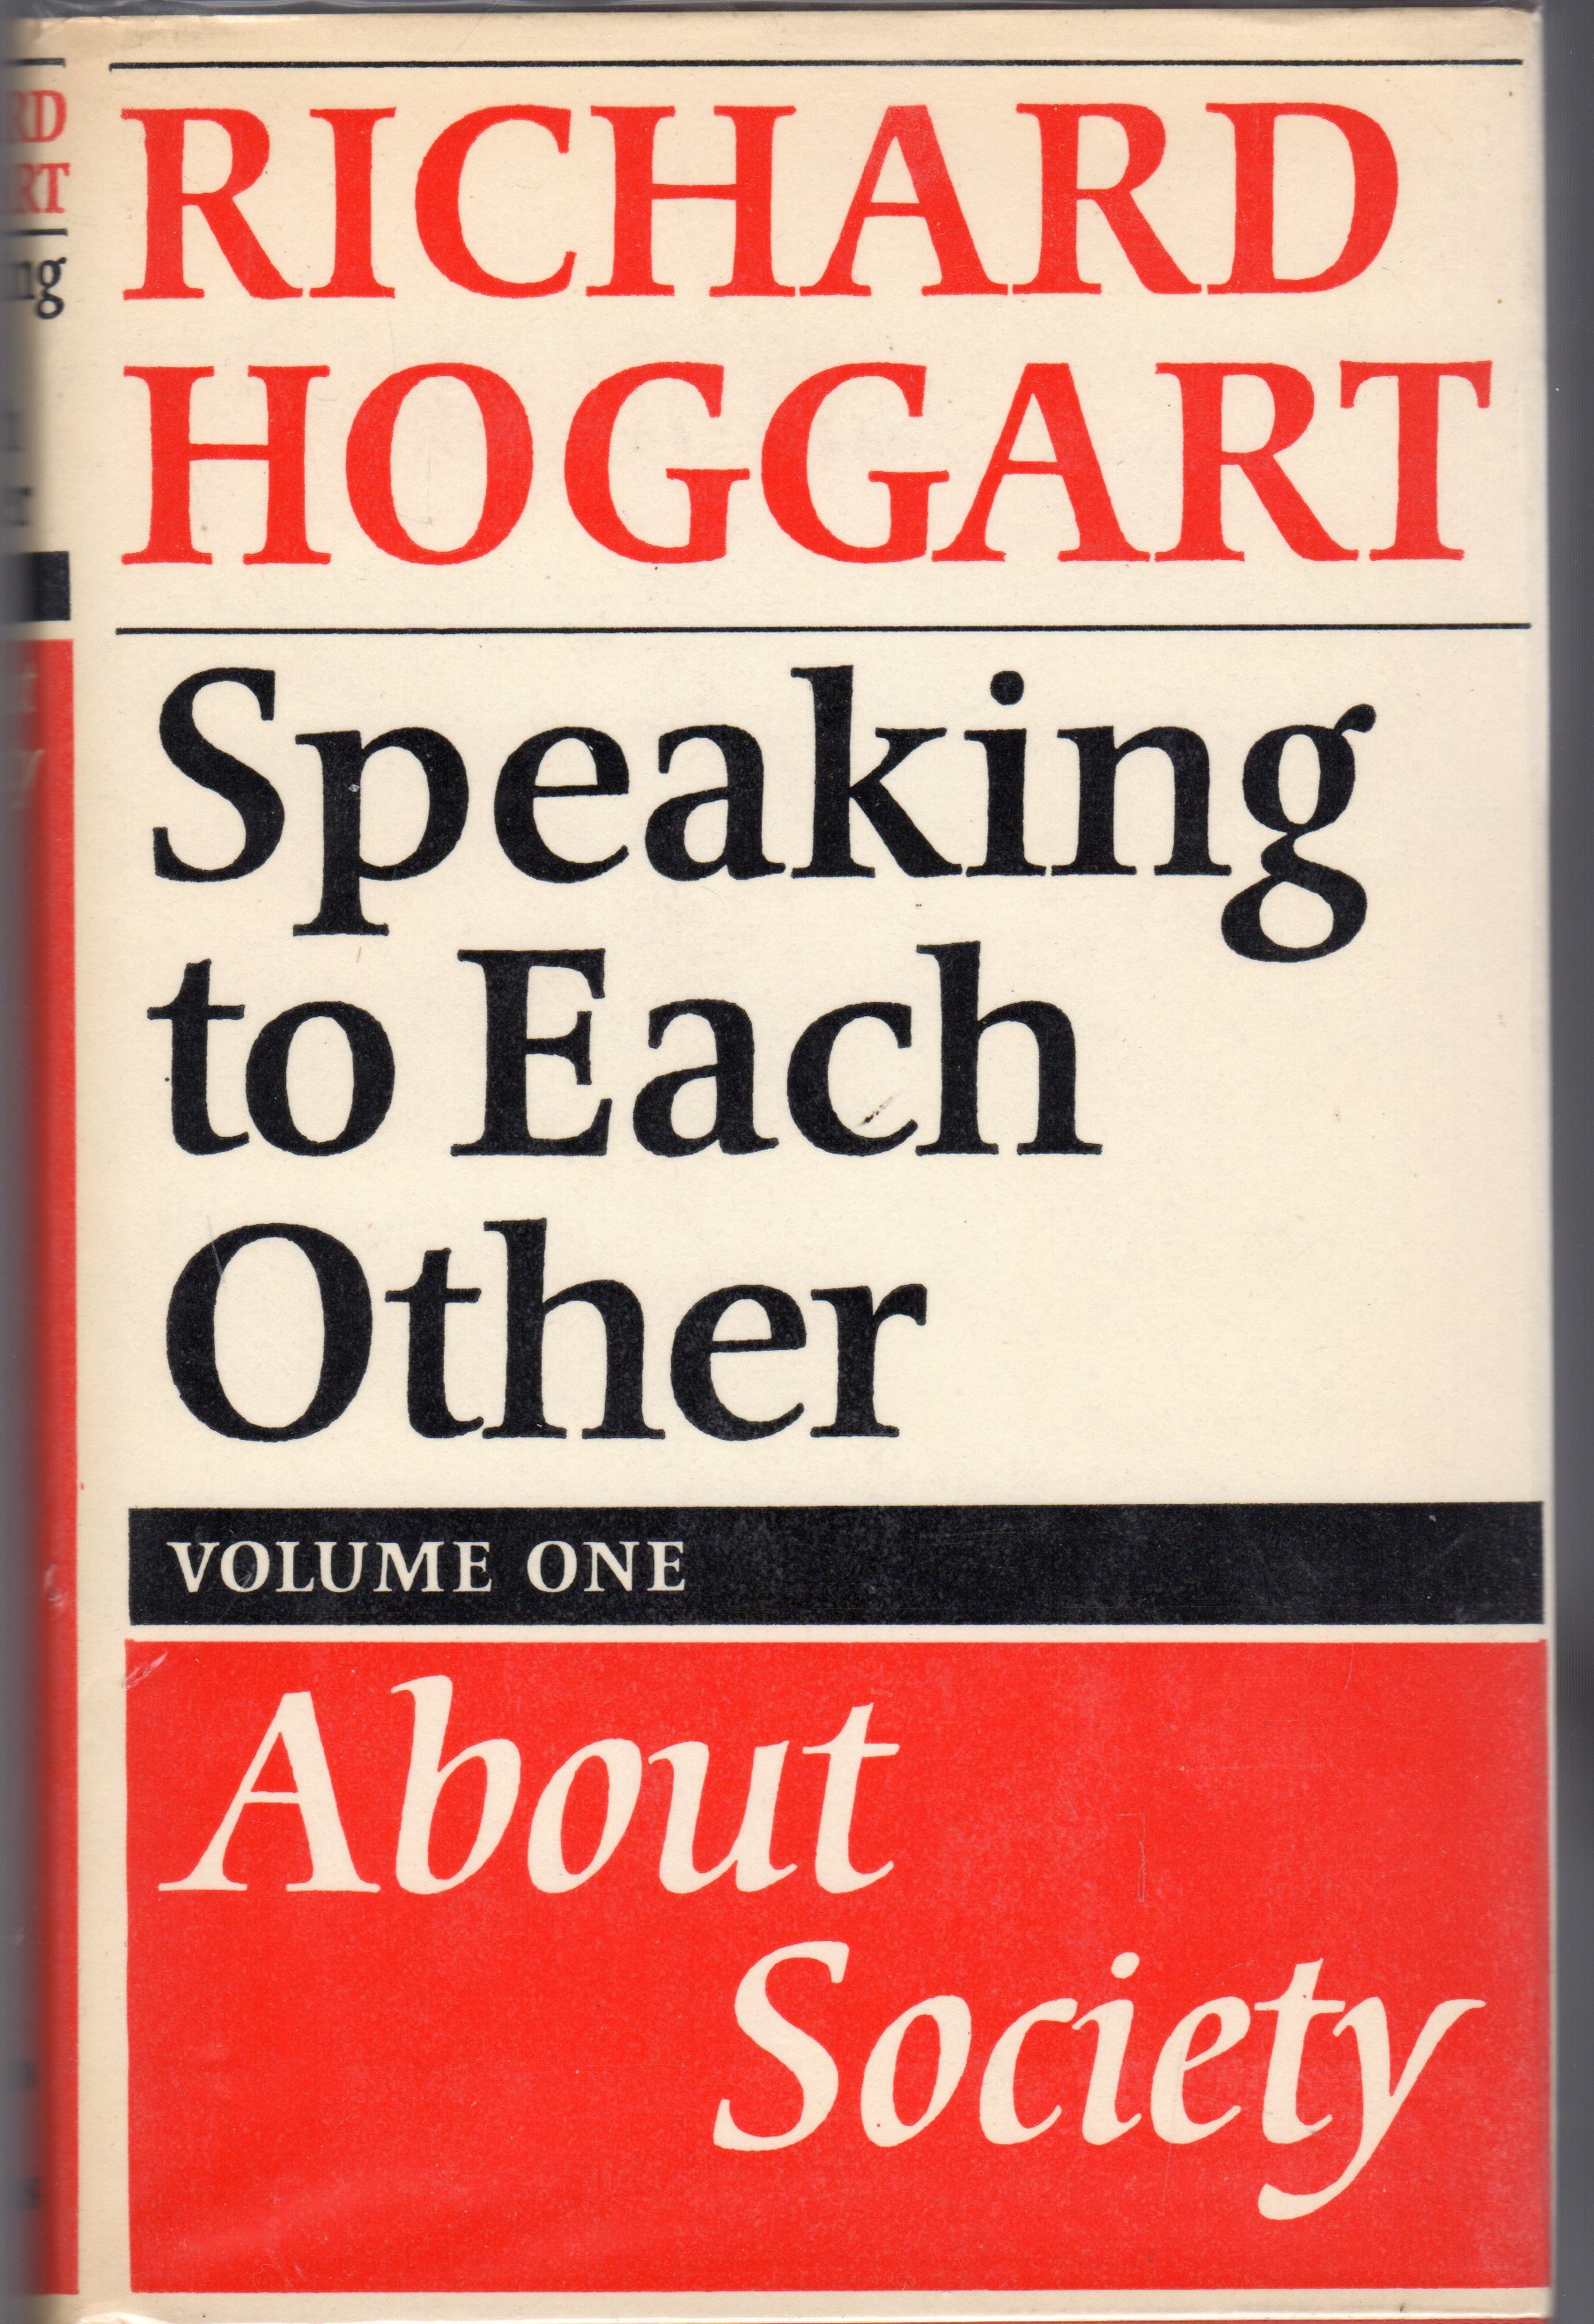 Image for Speaking to Each Other Volume I - About Society